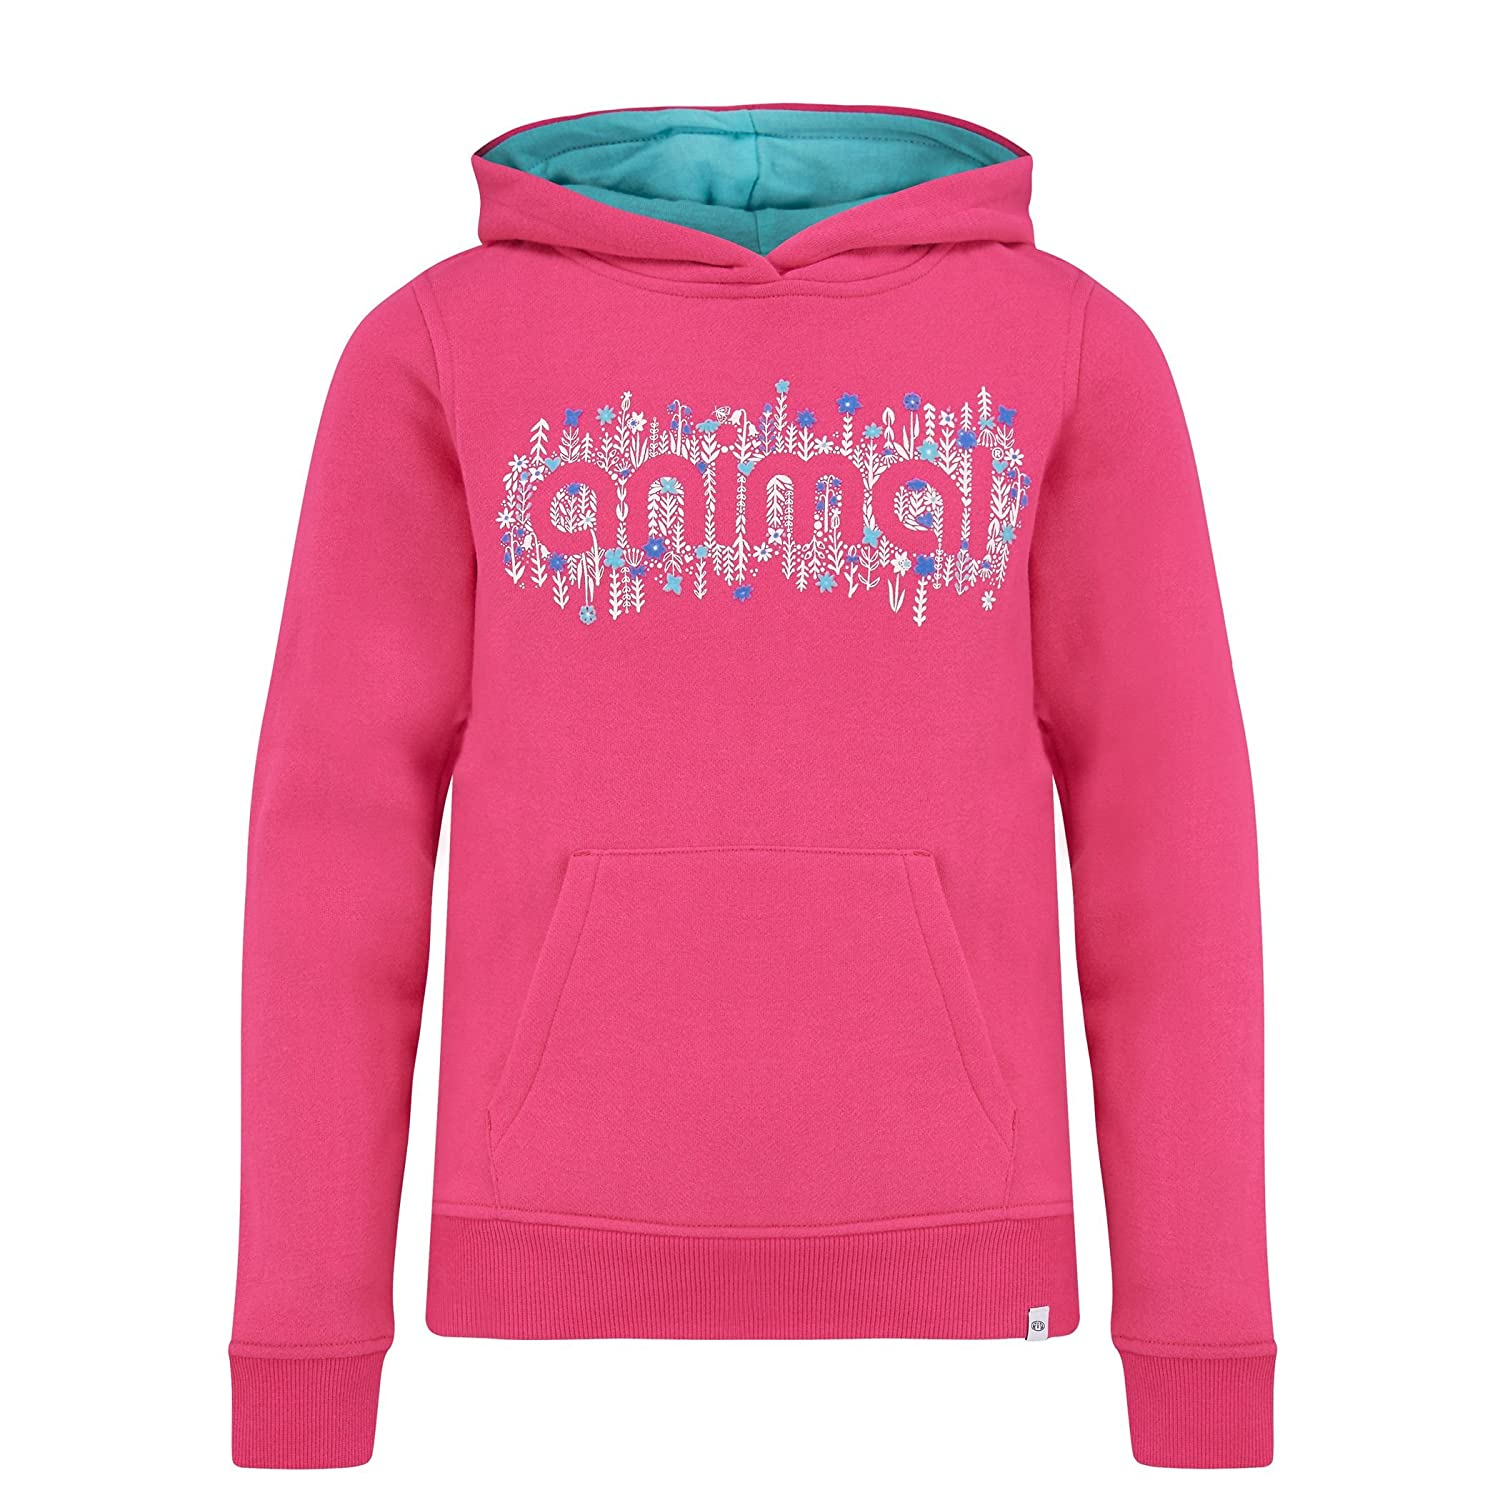 1c90a3217b2 Animal Girl s Mollie Mai Sweatshirts Pink rosy Pink 15-16